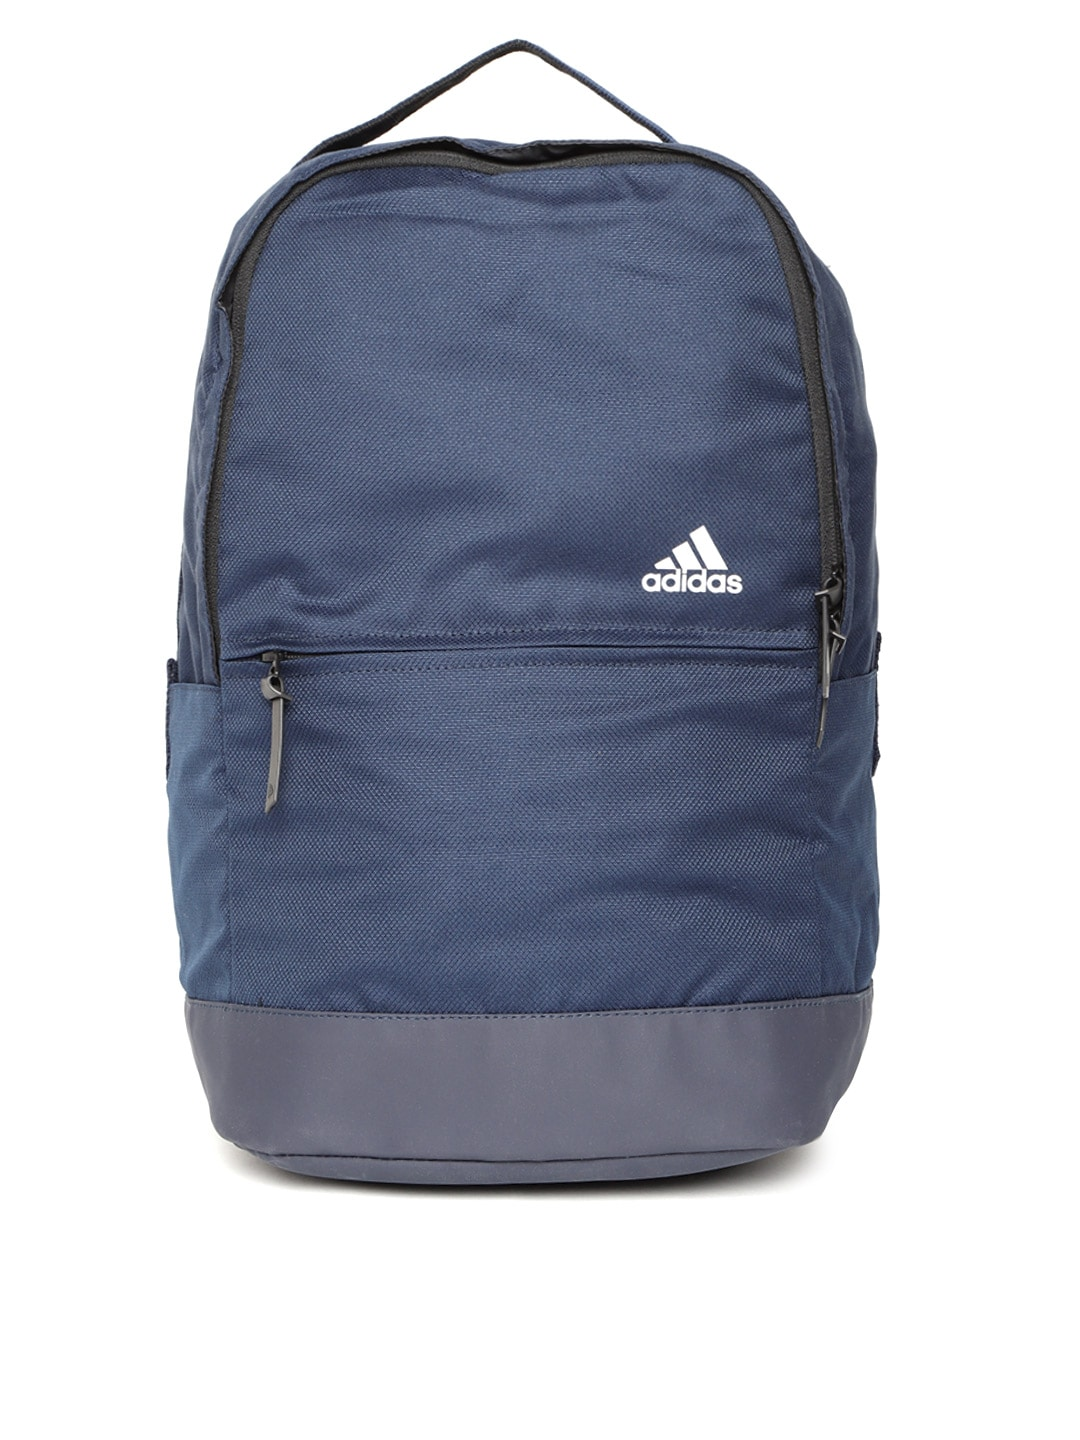 2c7f2e1ad32e Adidas Men Casual - Buy Adidas Men Casual online in India